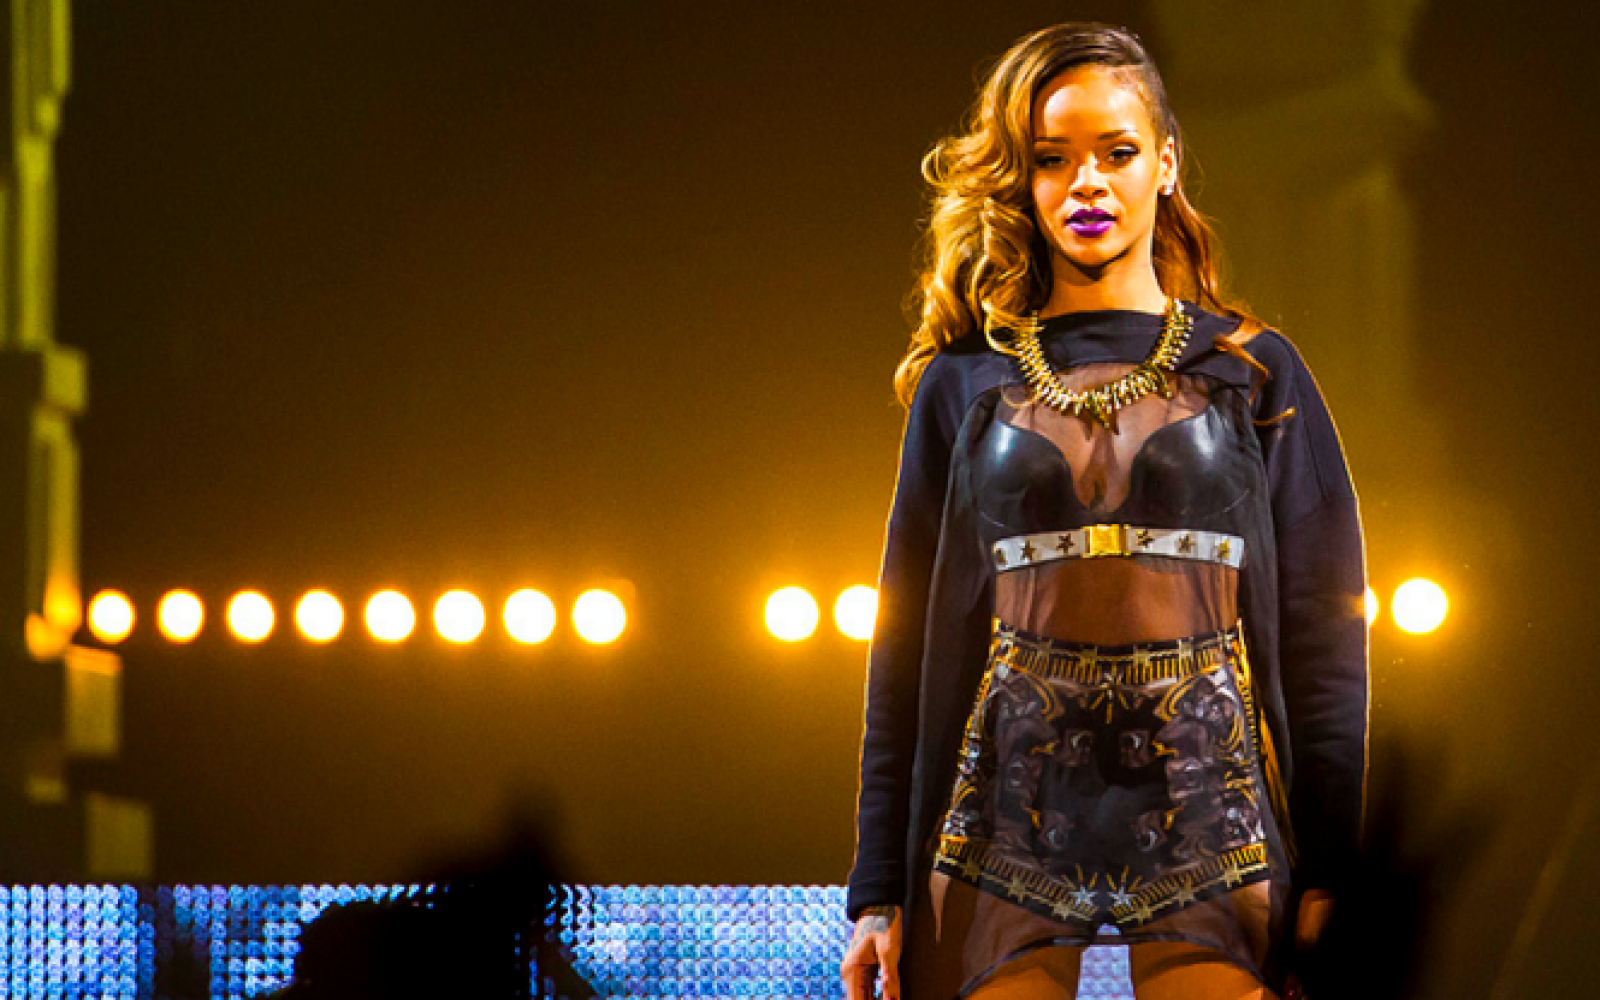 19 Quotes On Rihanna That Show Why She's An Icon